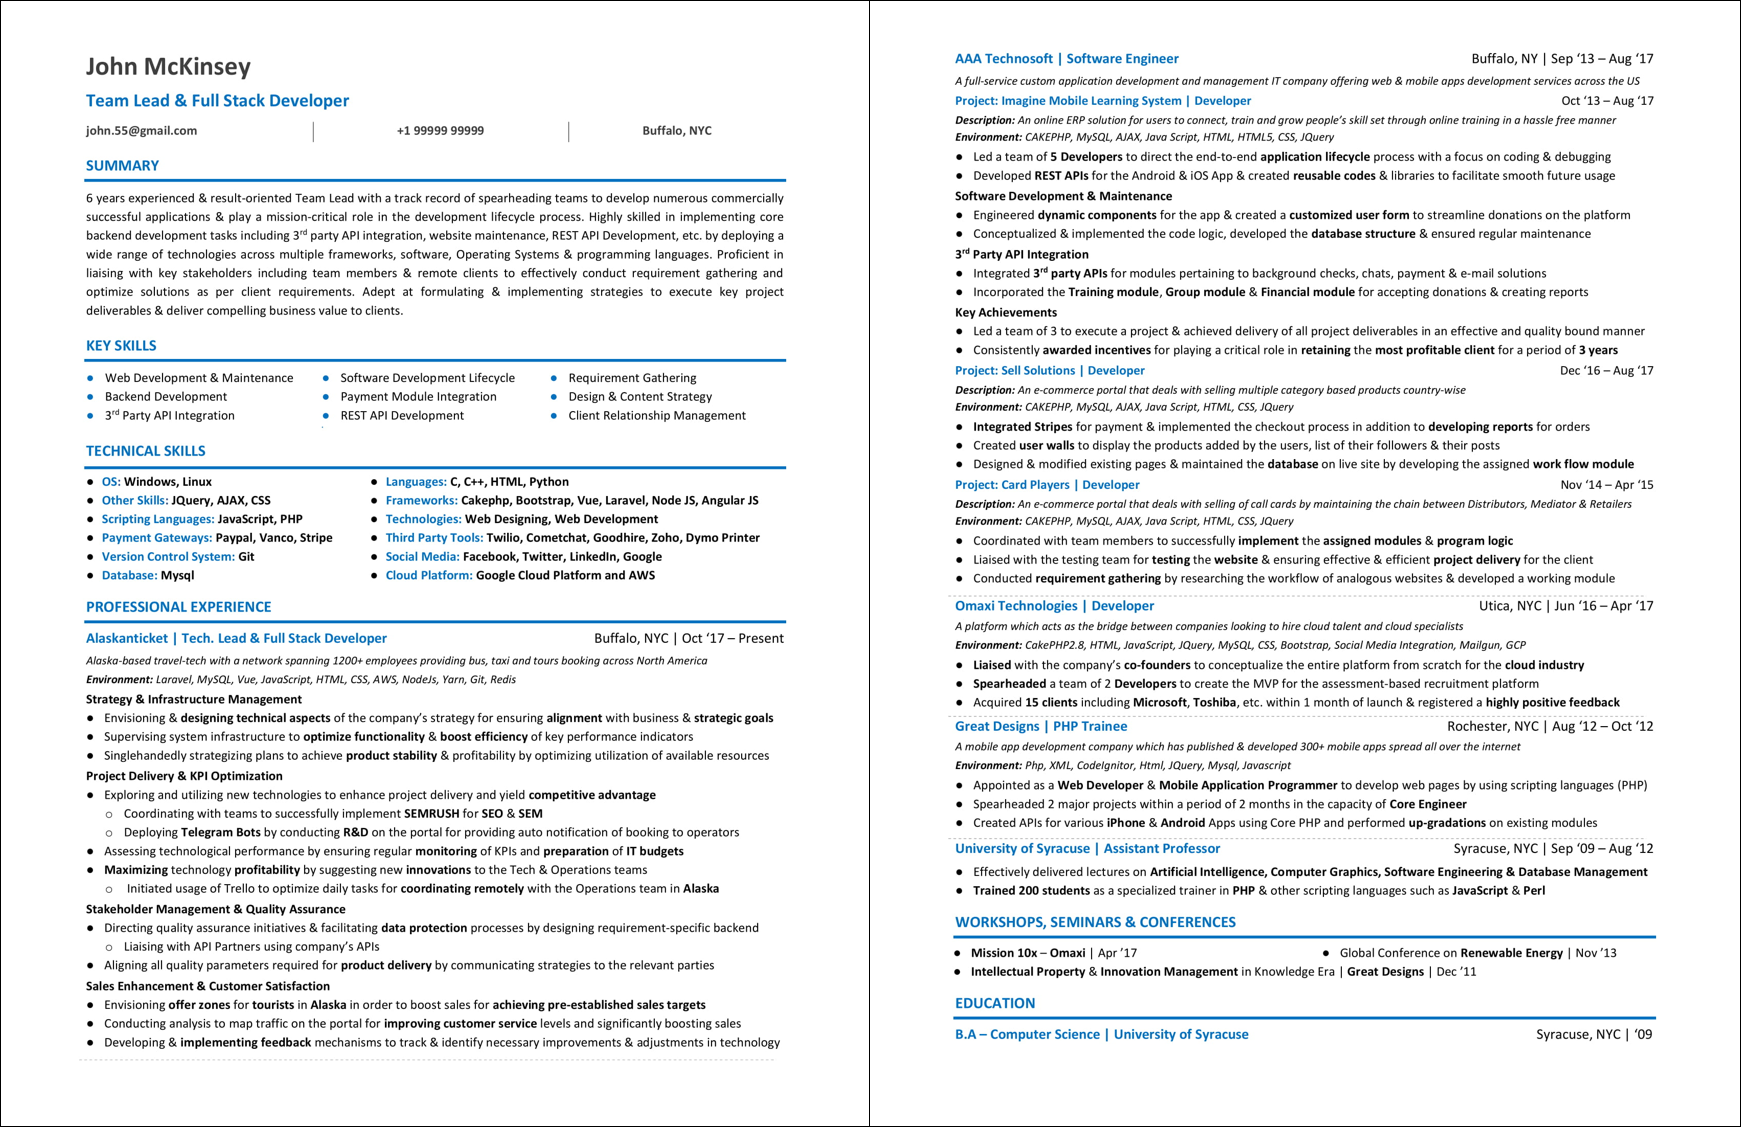 A Complete Sample Resume For Web Developer